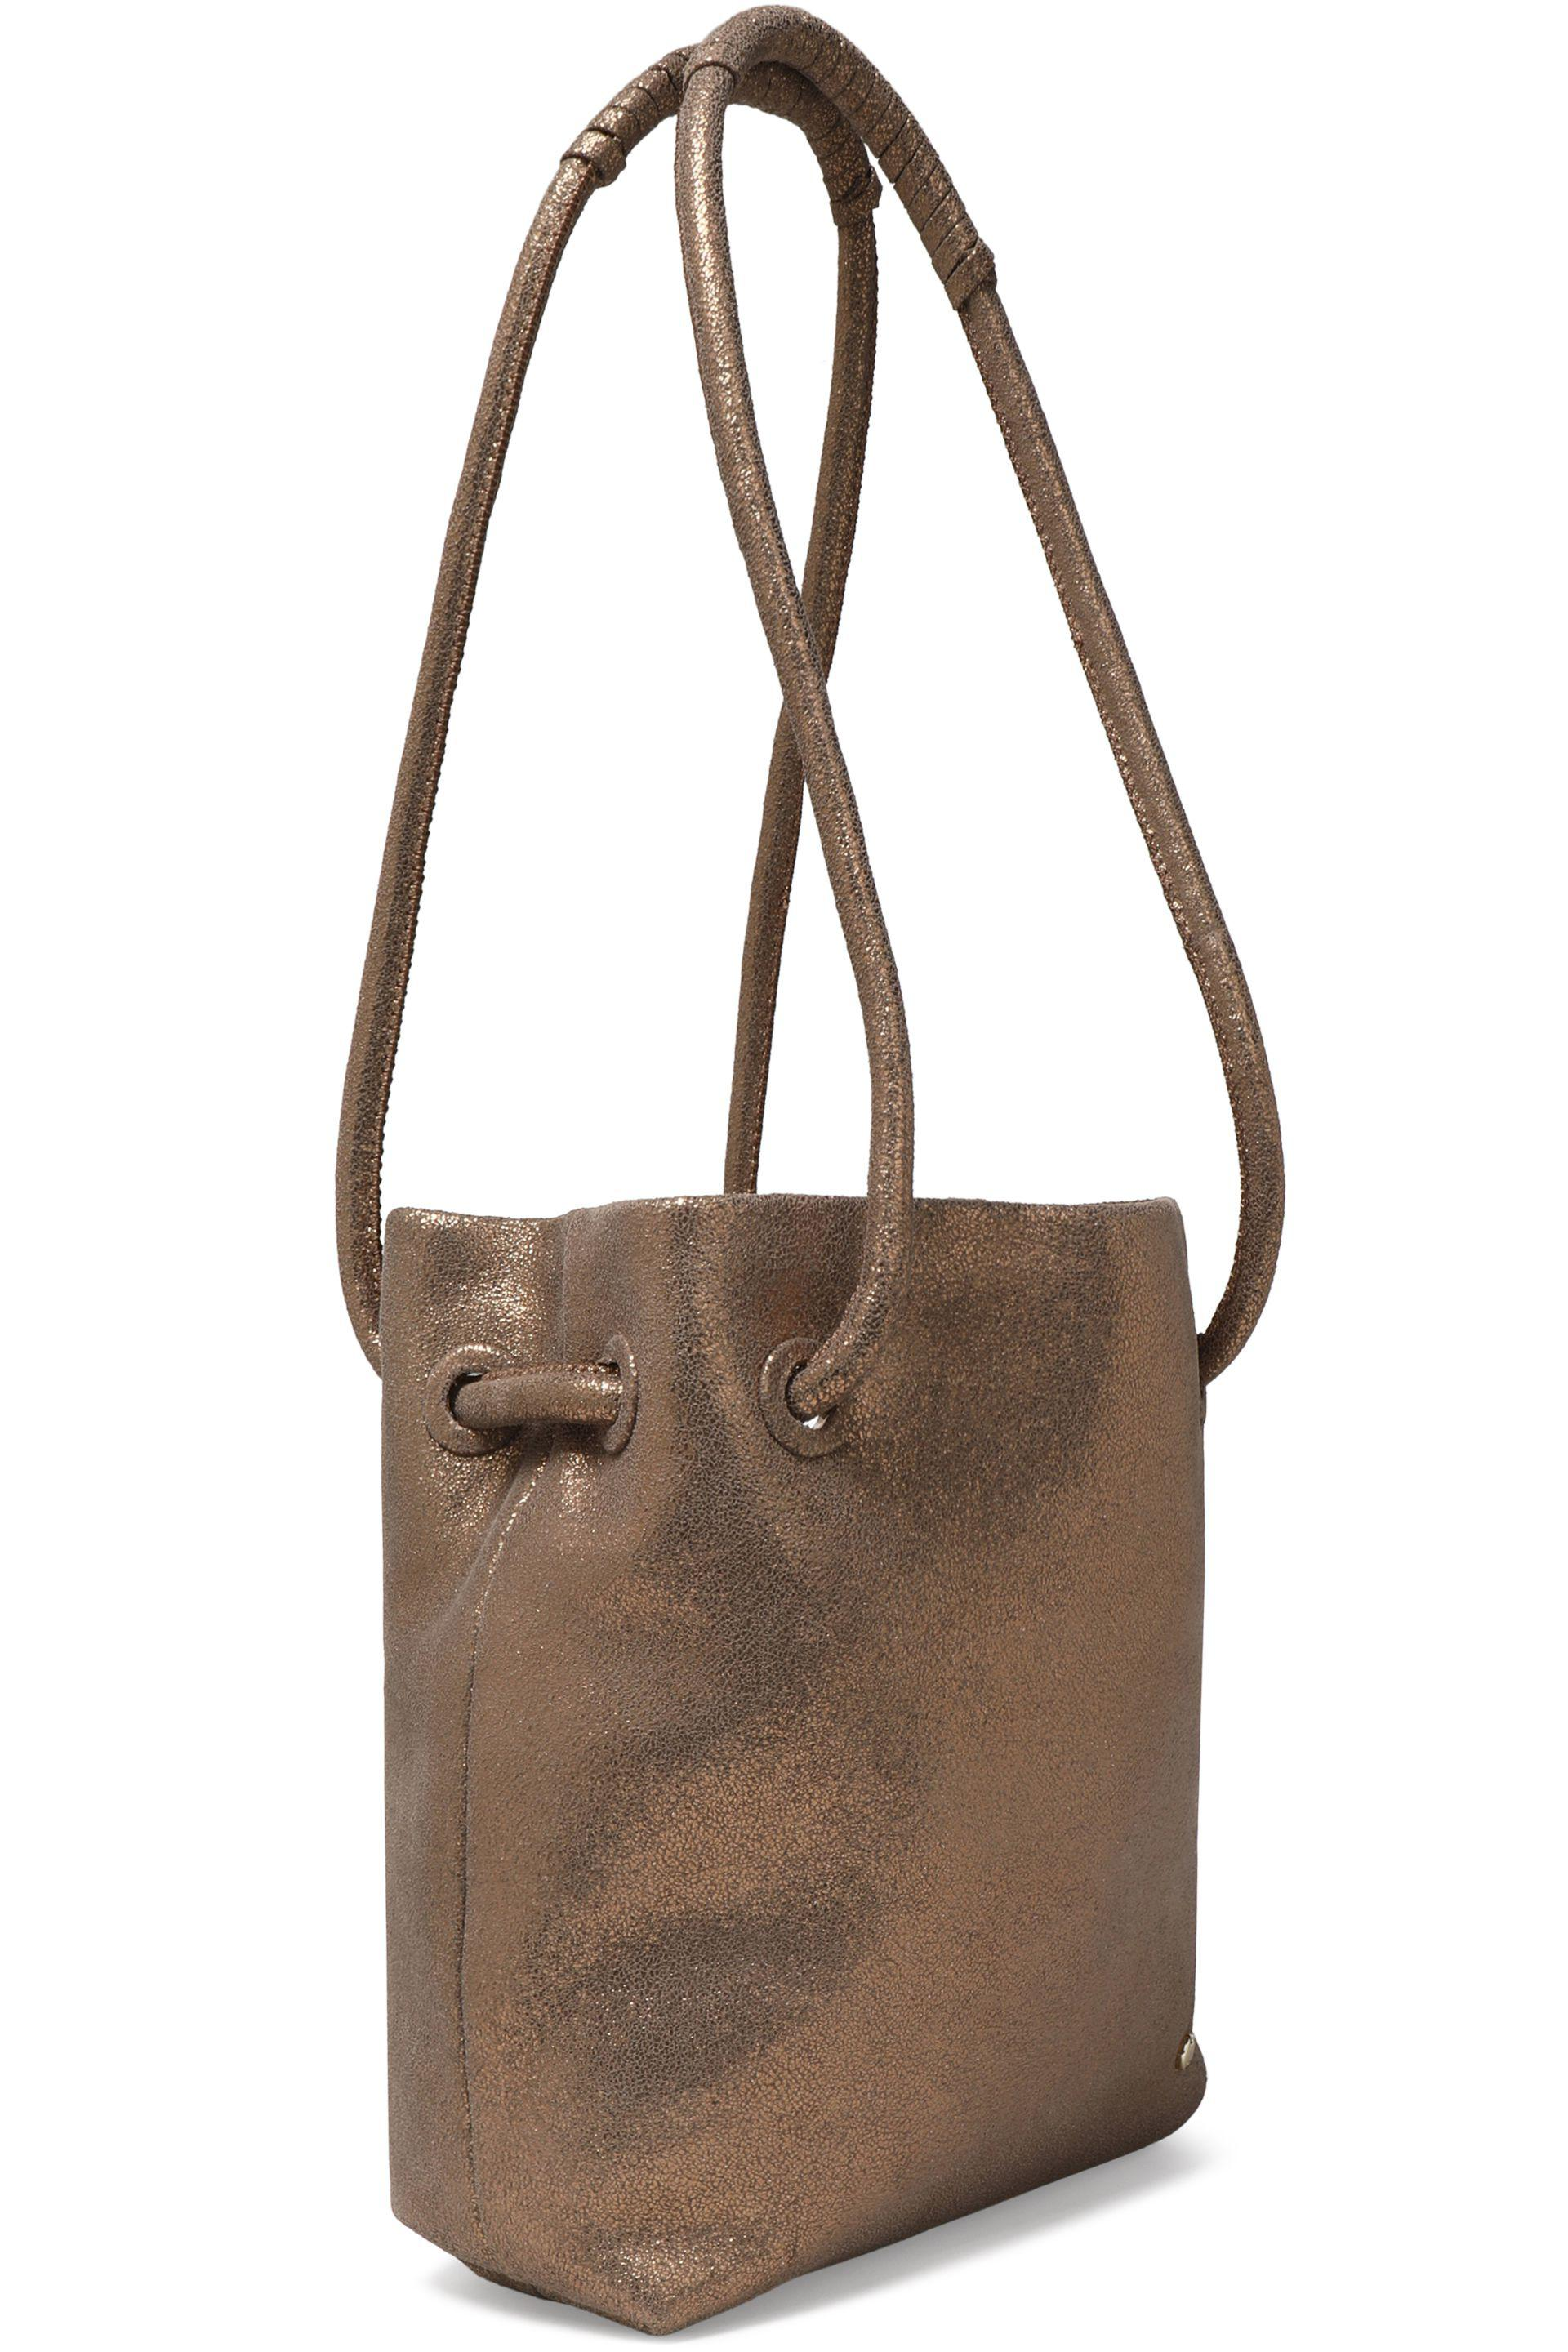 7a747ddd475 Halston Heritage Metallic Cracked-leather Bucket Bag - Lyst